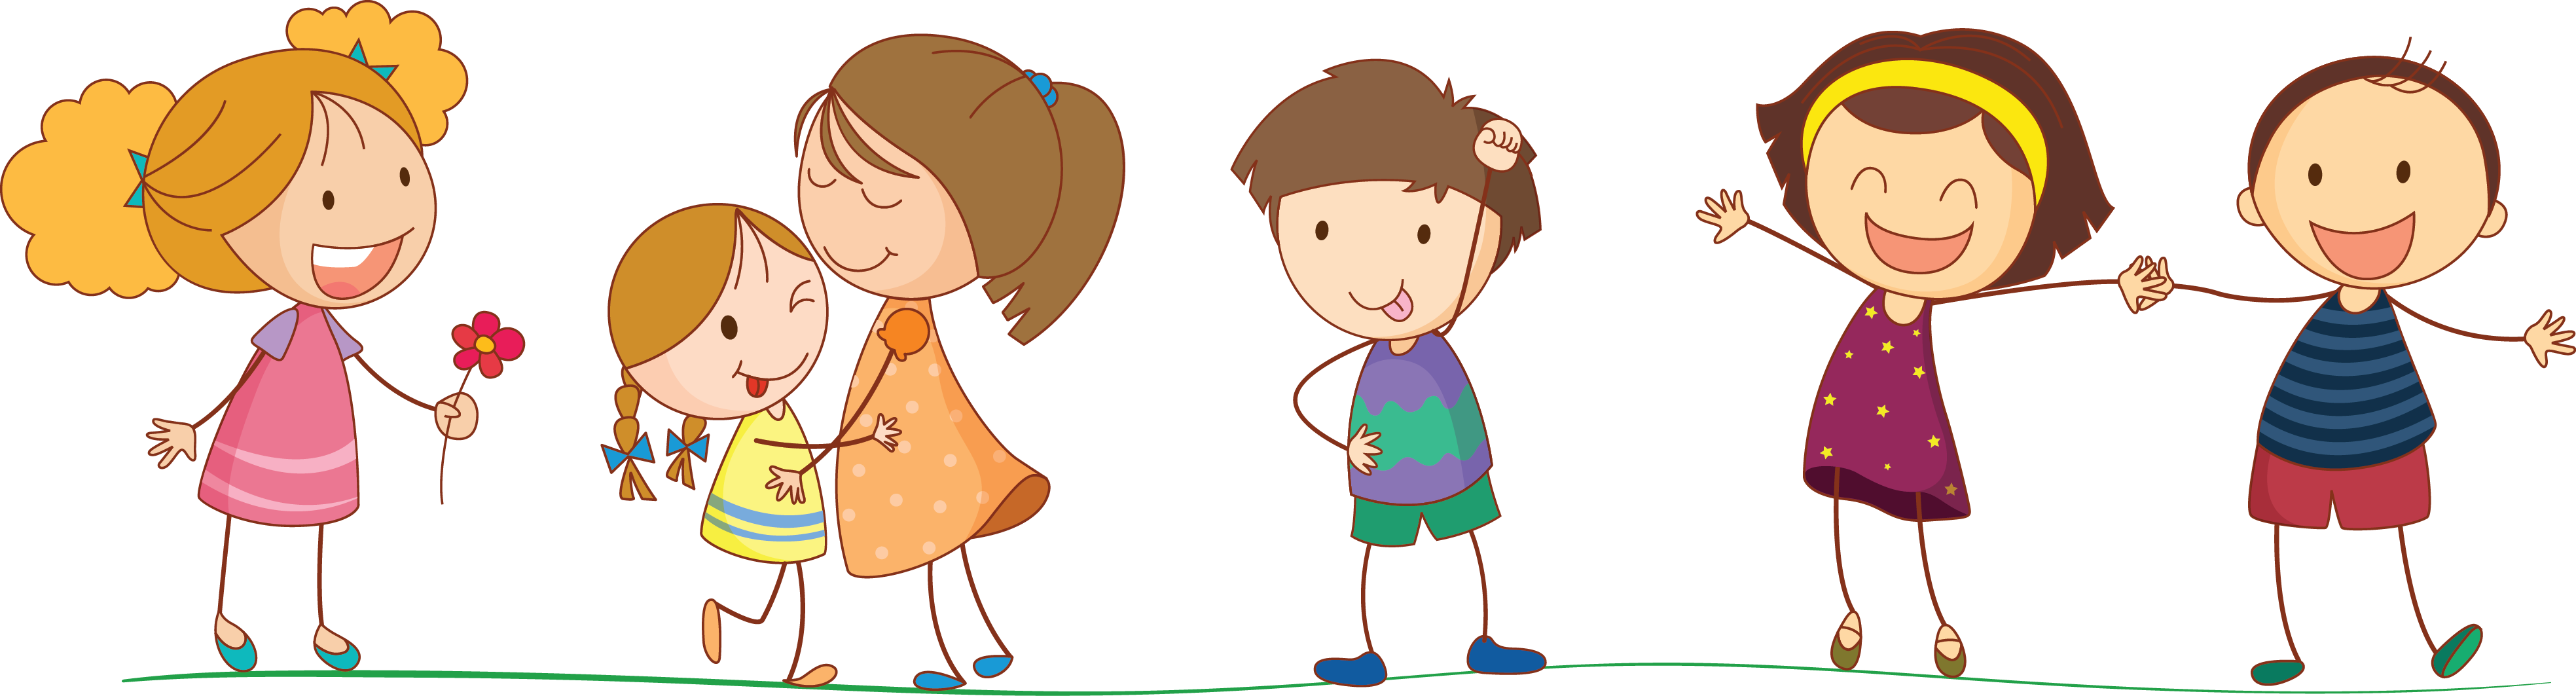 Kids transparent png pictures. Lemons clipart kid